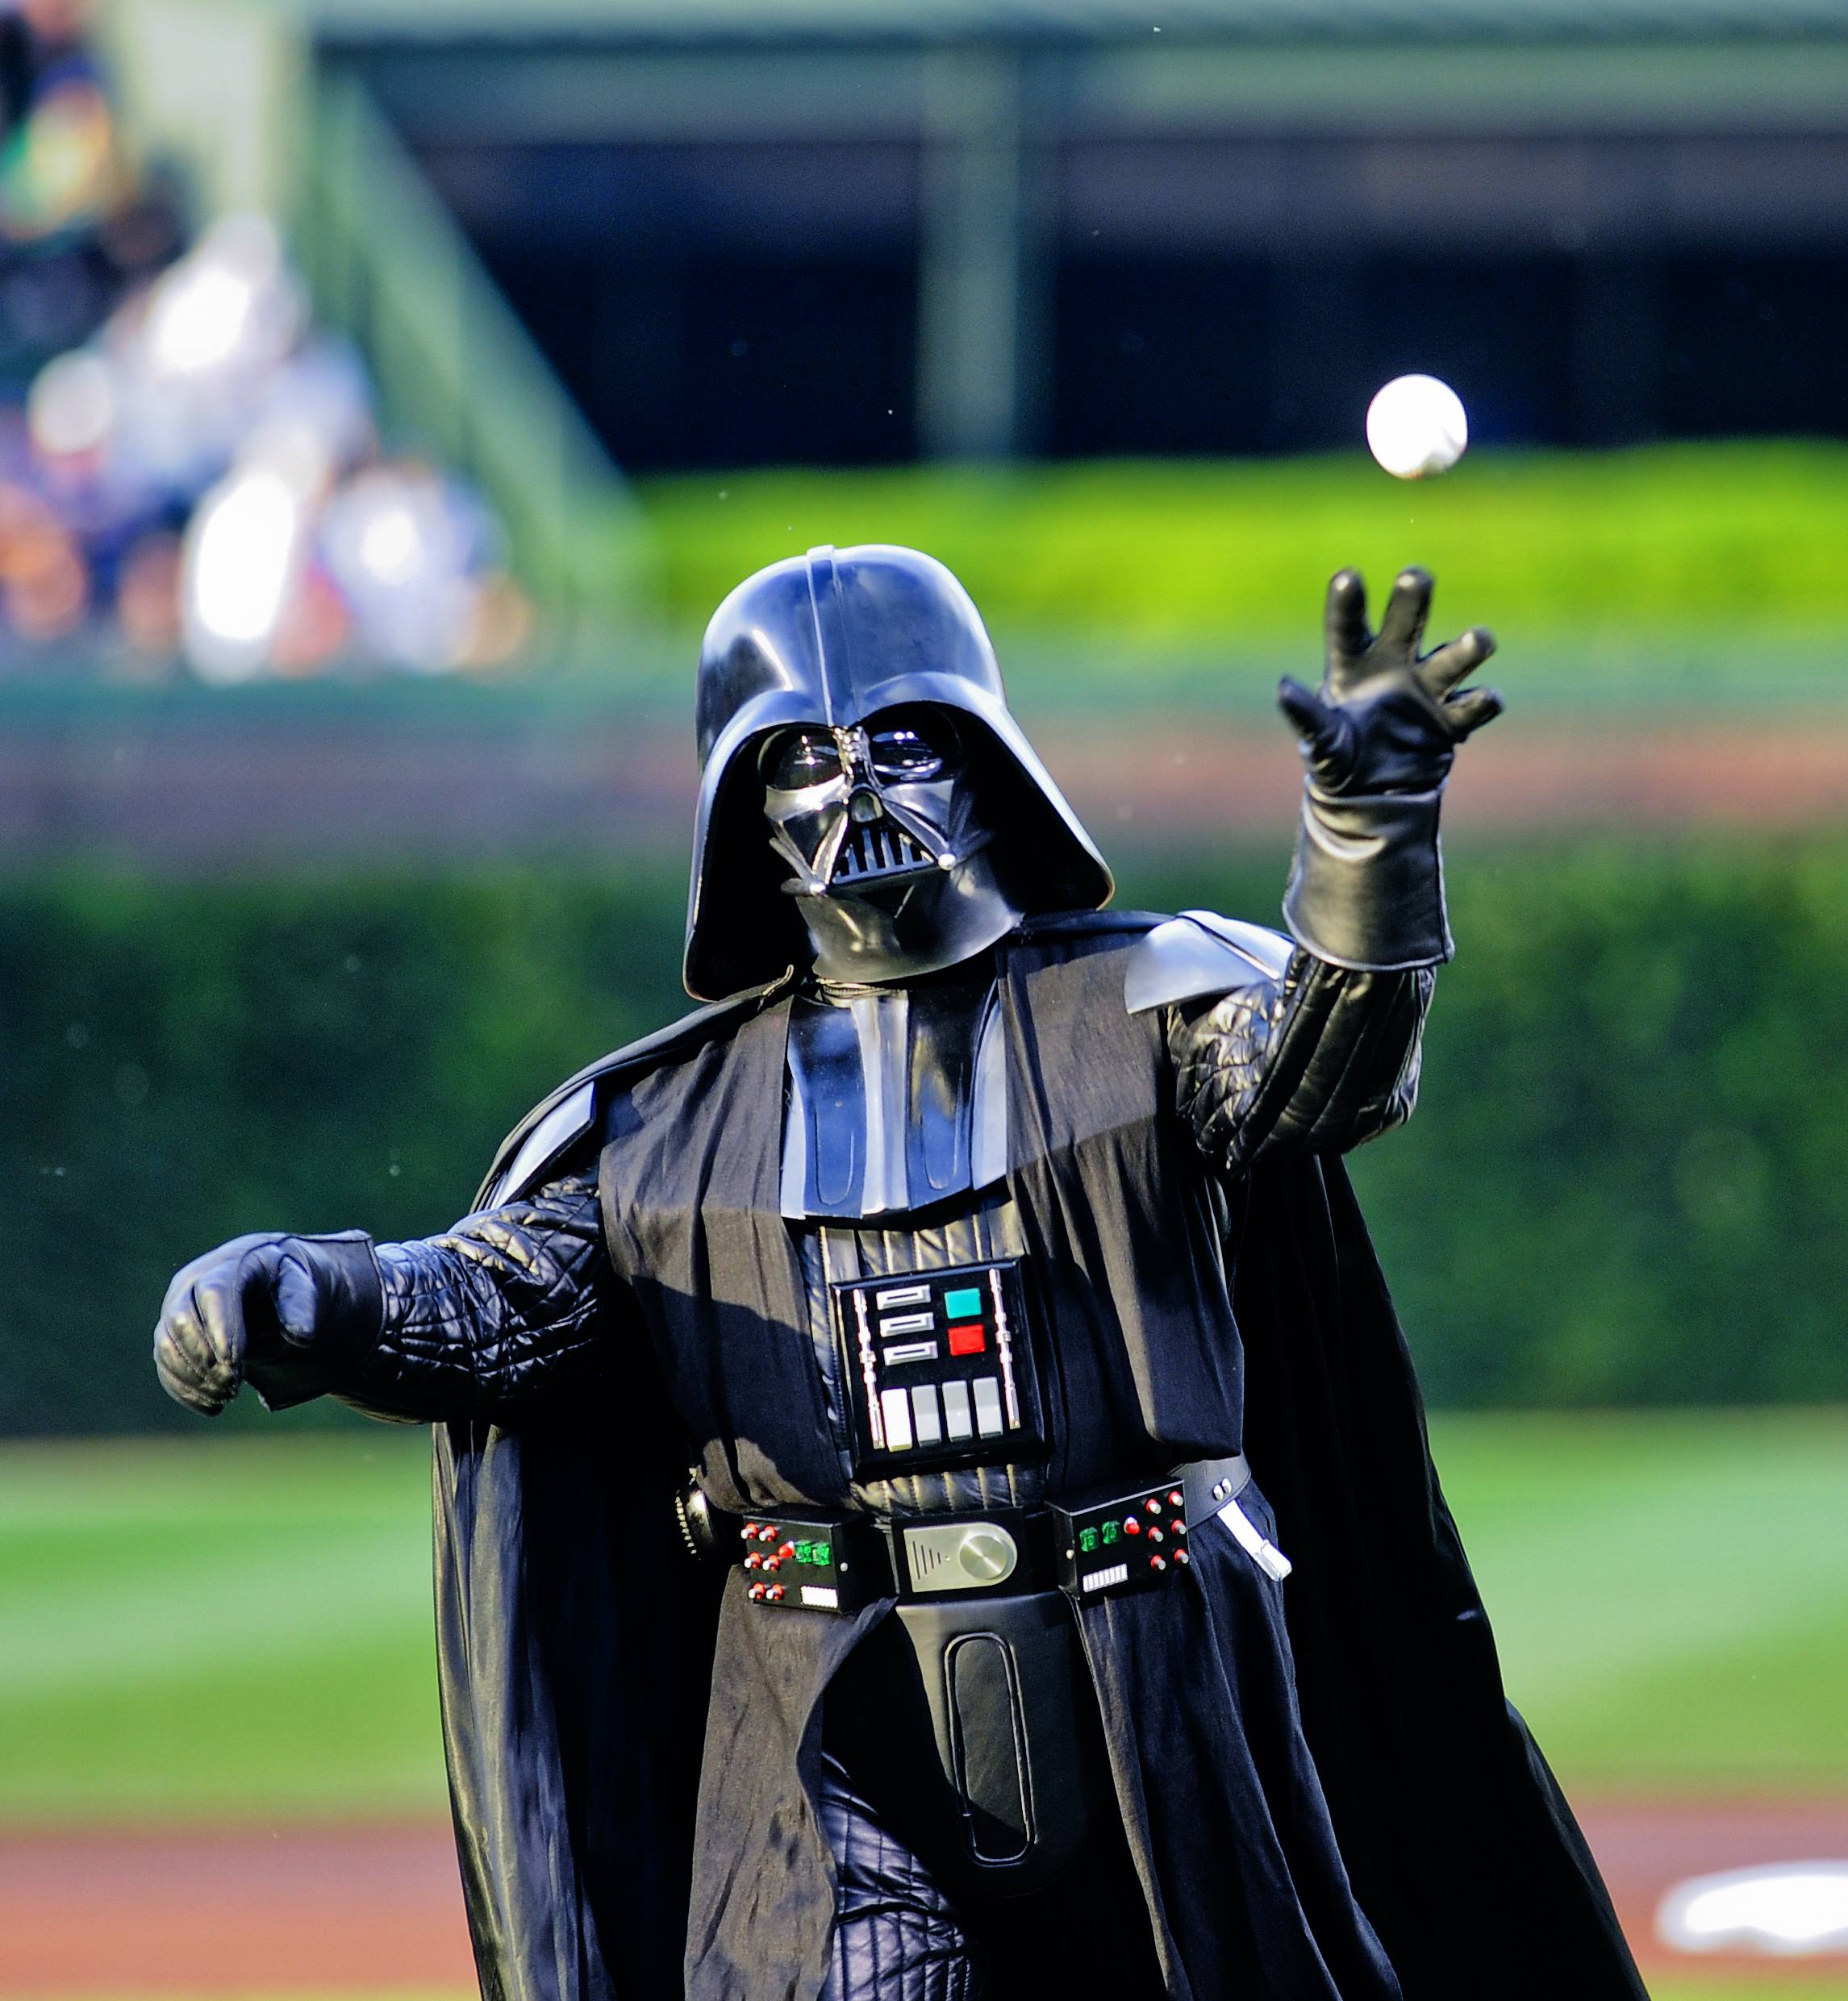 Darth Vader throws out a ceremonial first pitch before the start of a baseball game between the San Francisco Giants and the Chicago Cubs on Wednesday in Chicago.